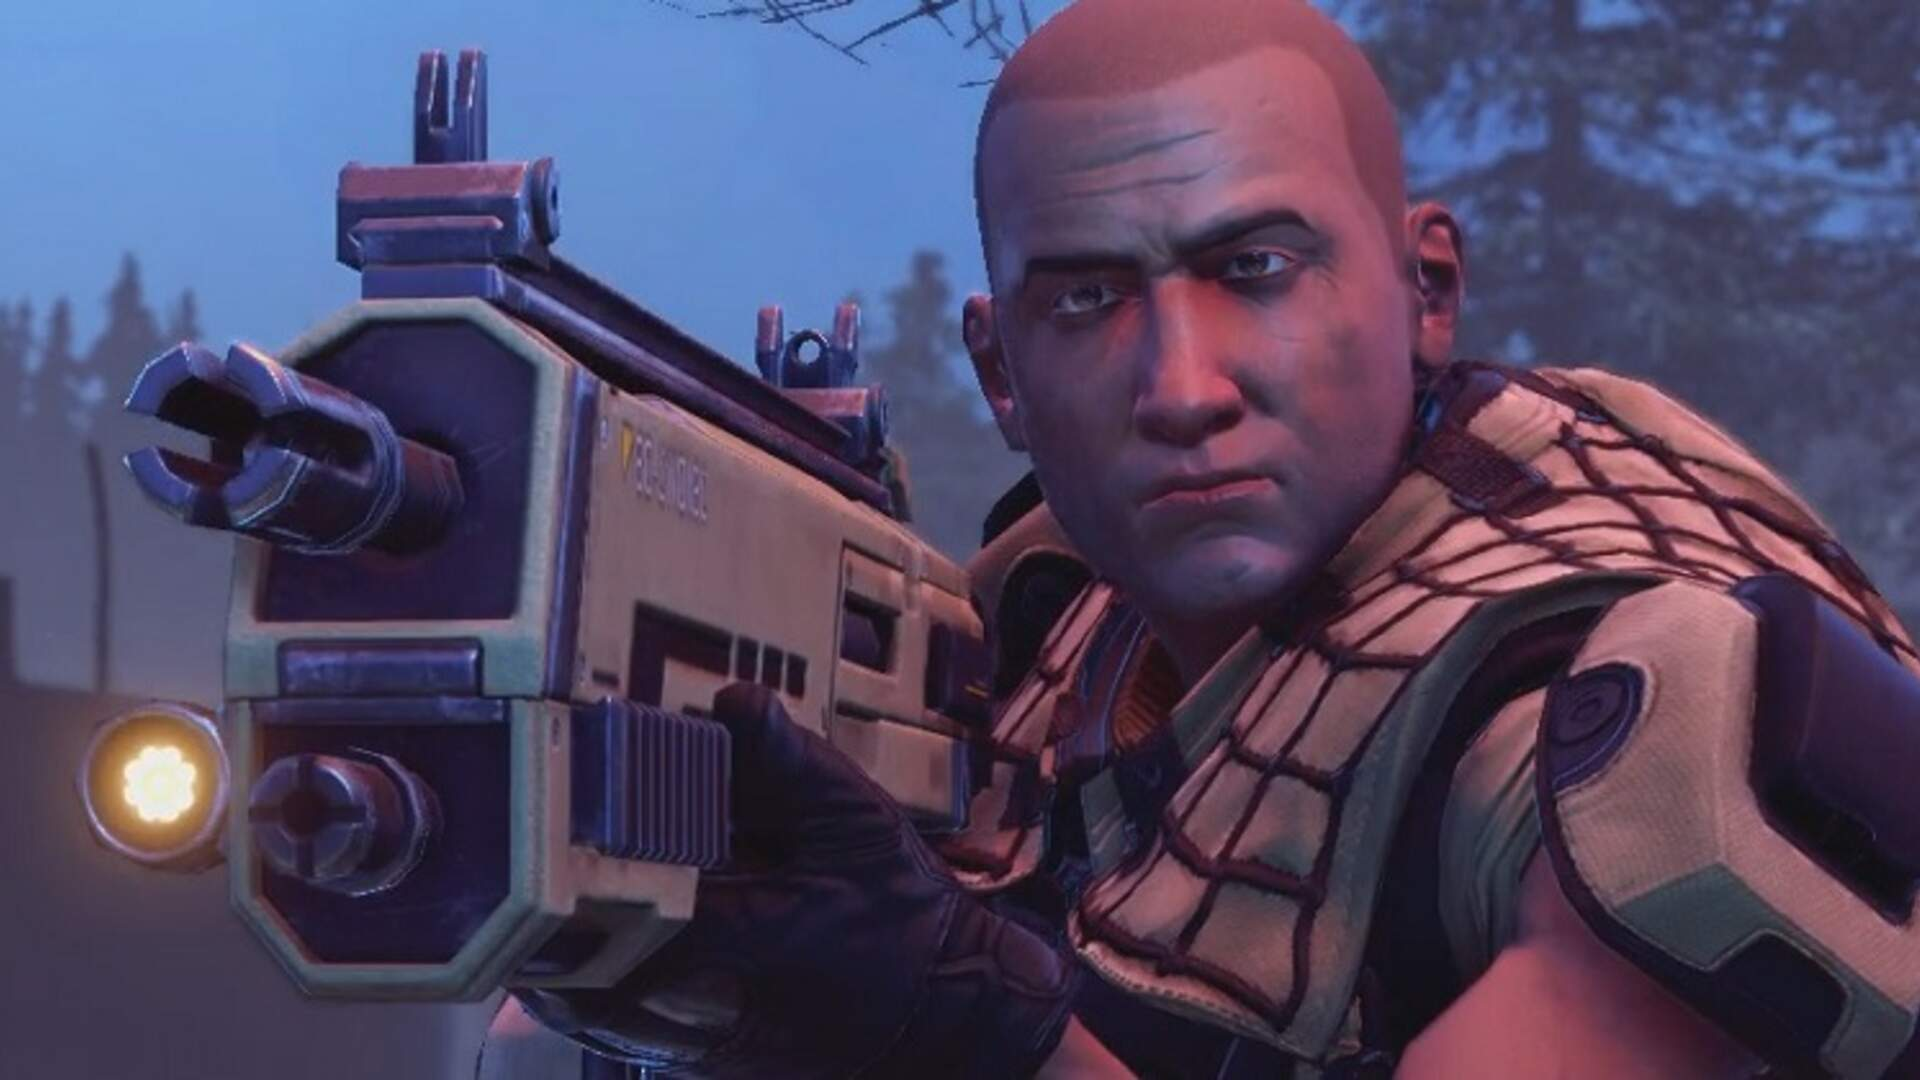 XCOM 2 Combat Tips - How to Survive Each Mission